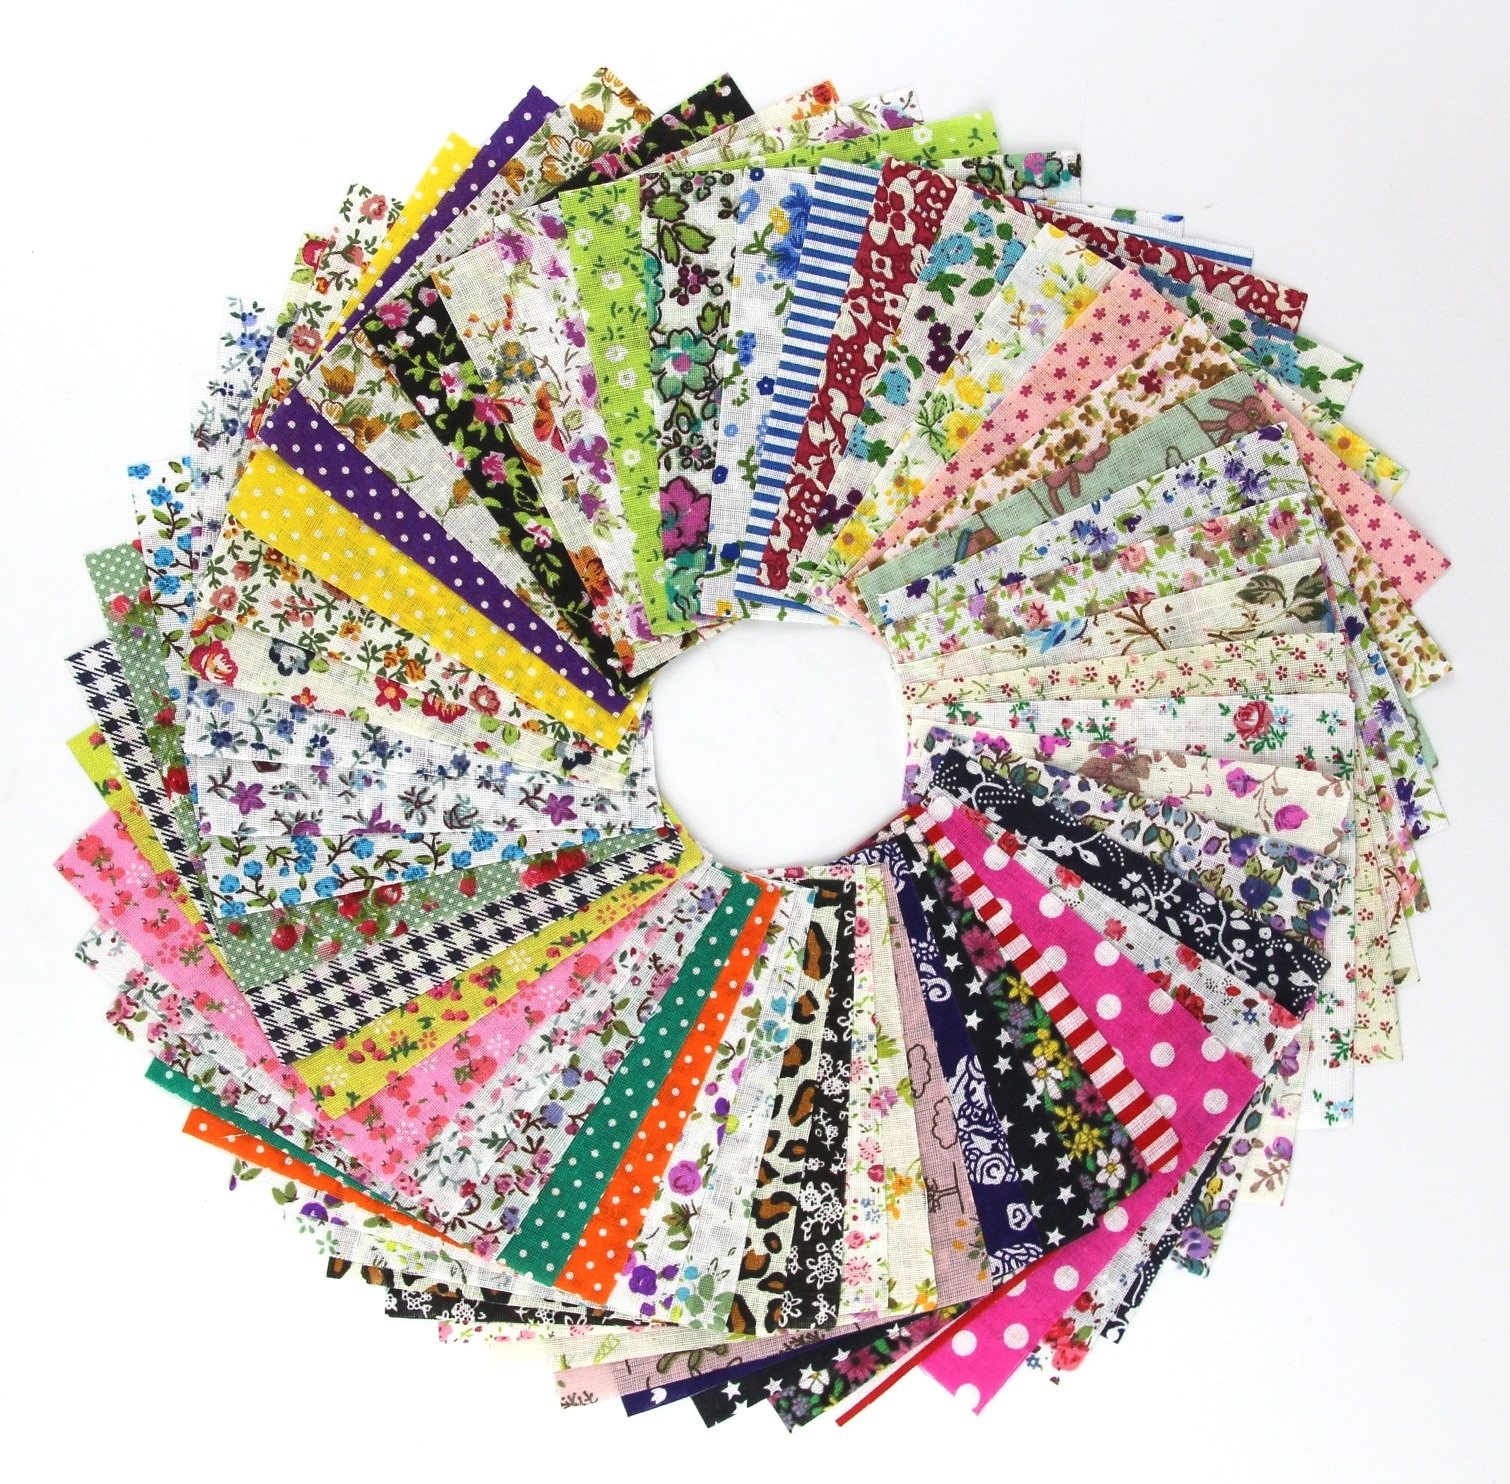 15/60pcs 20*25cm DIY Handmade Material Assorted Floral Printed Cotton Cloth Sewing Quilting Fabric for Patchwork Needlework